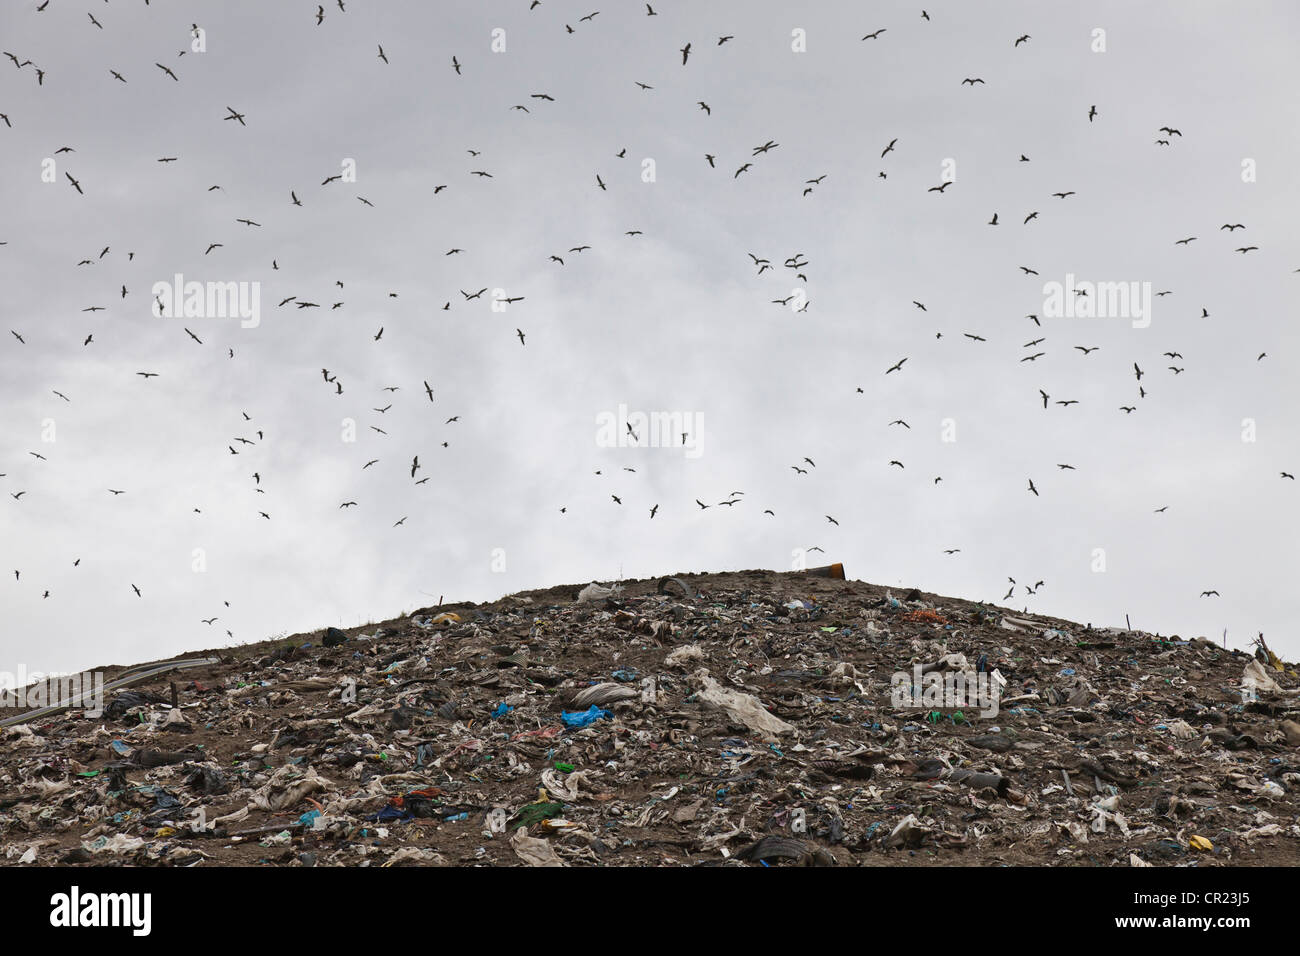 Birds circling garbage collection center - Stock Image